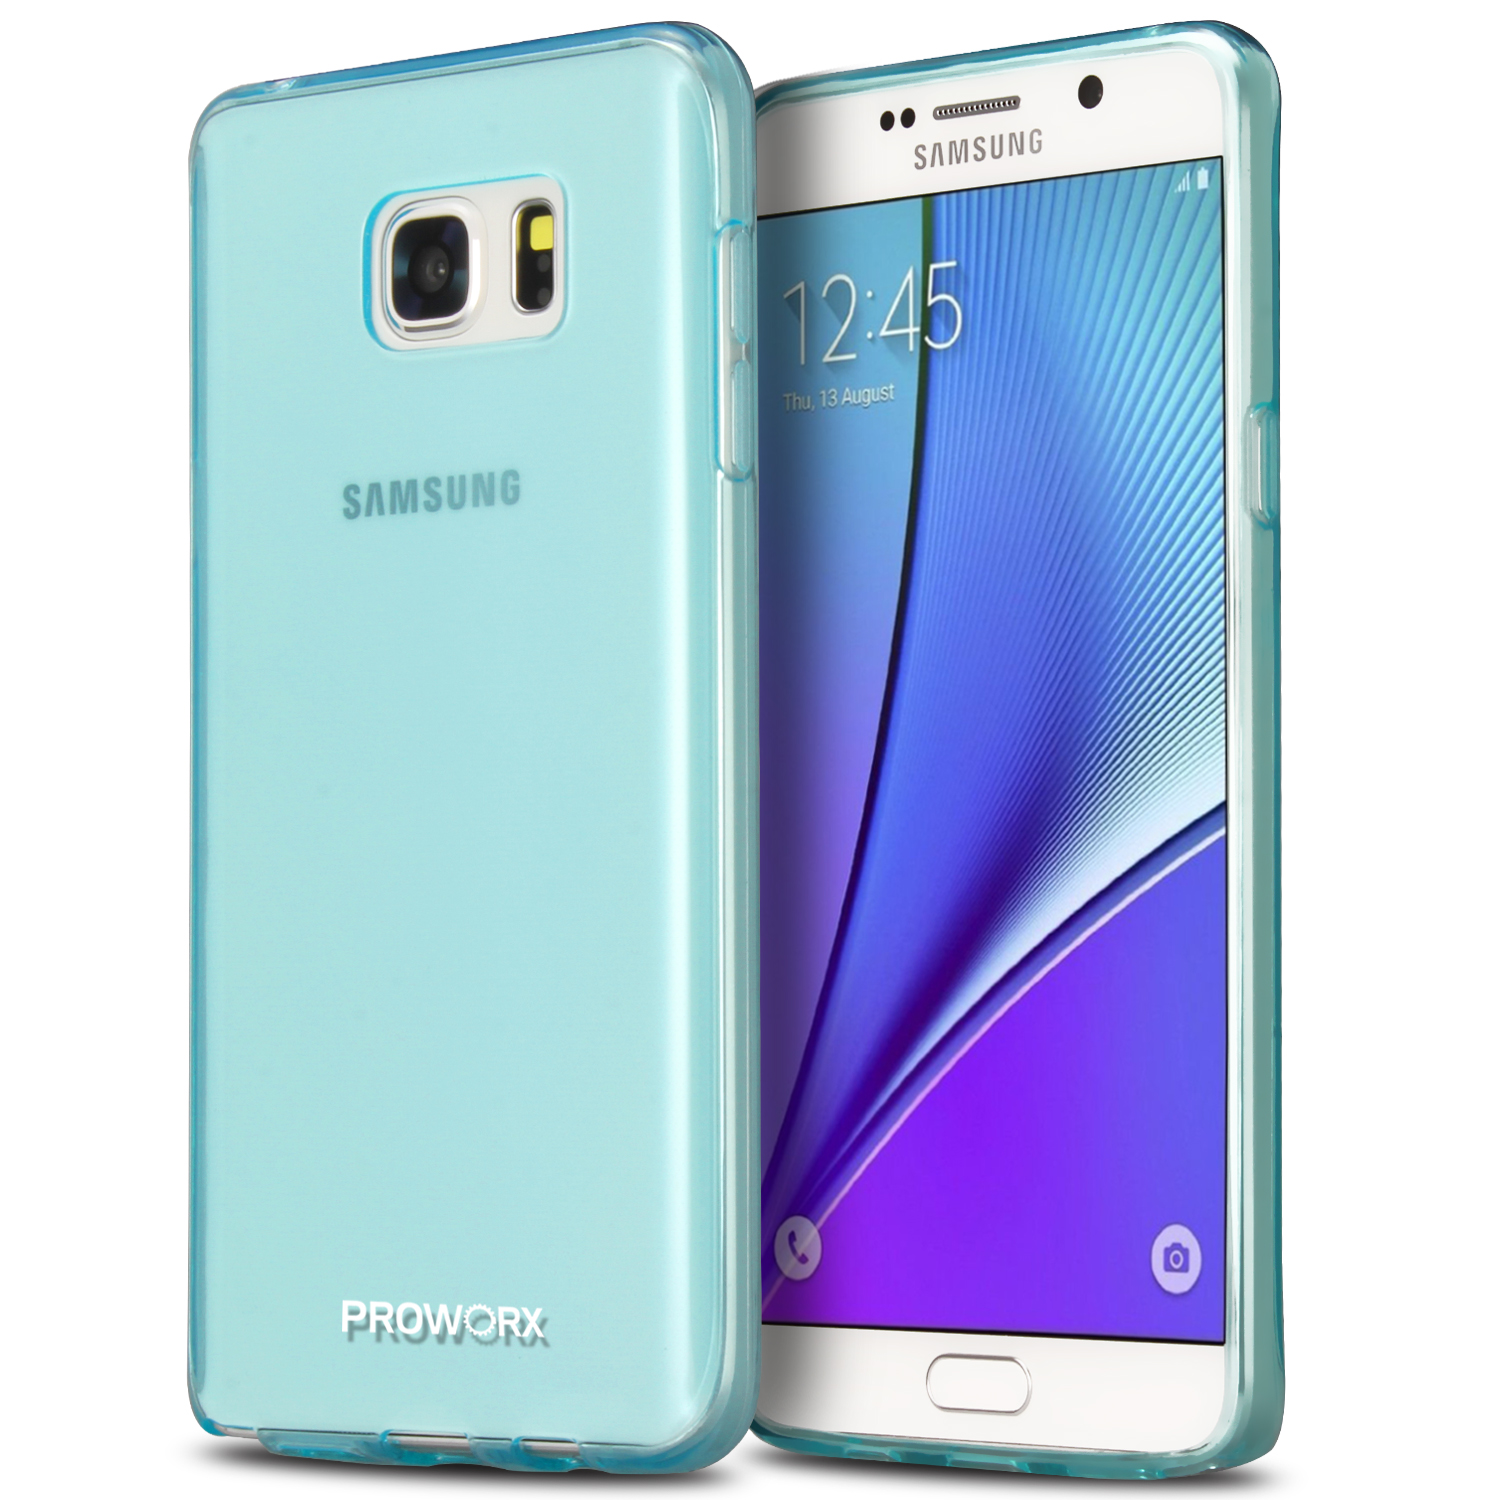 Samsung Galaxy Note 5 Mint Green ProWorx Ultra Slim Thin Scratch Resistant TPU Silicone Case Cover